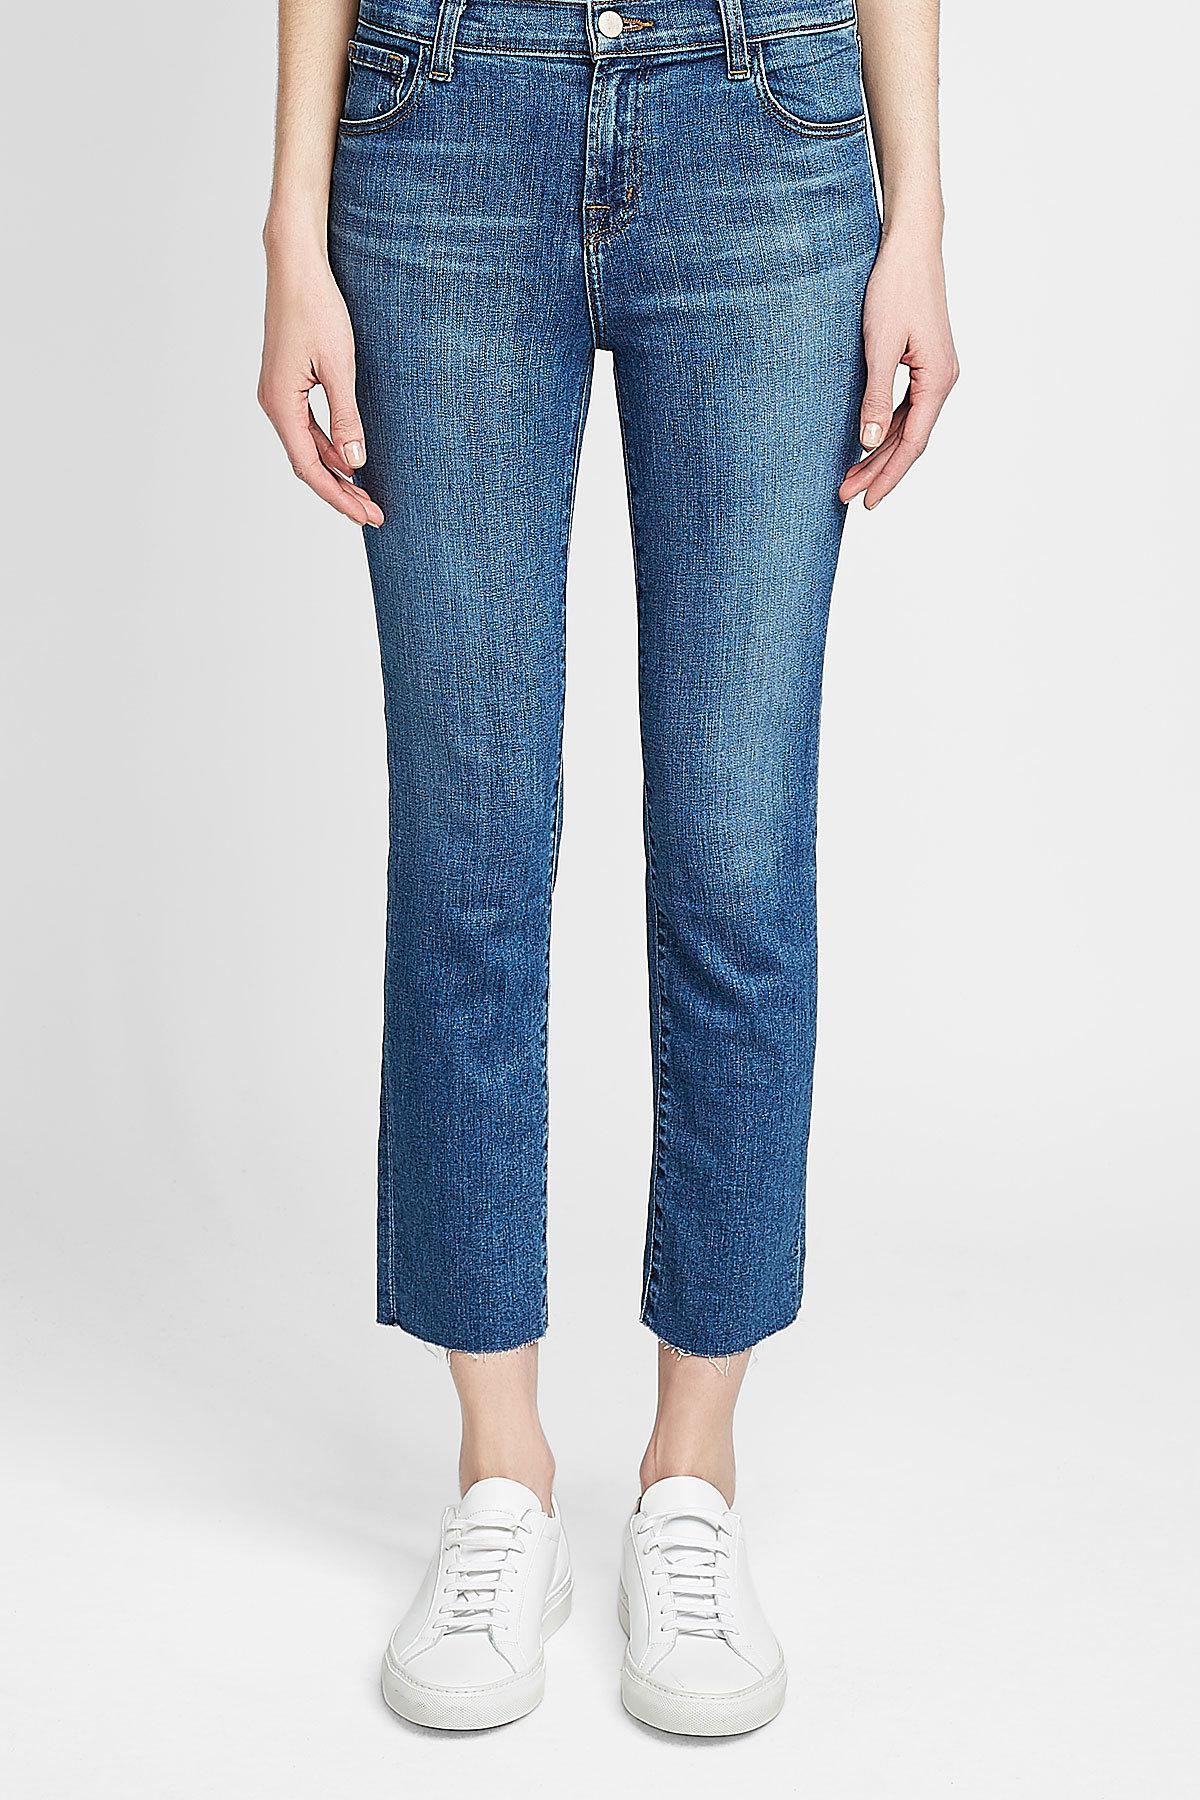 4afb6be98490 J Brand - Red Ruby High Rise Cropped Jeans - Lyst. View fullscreen